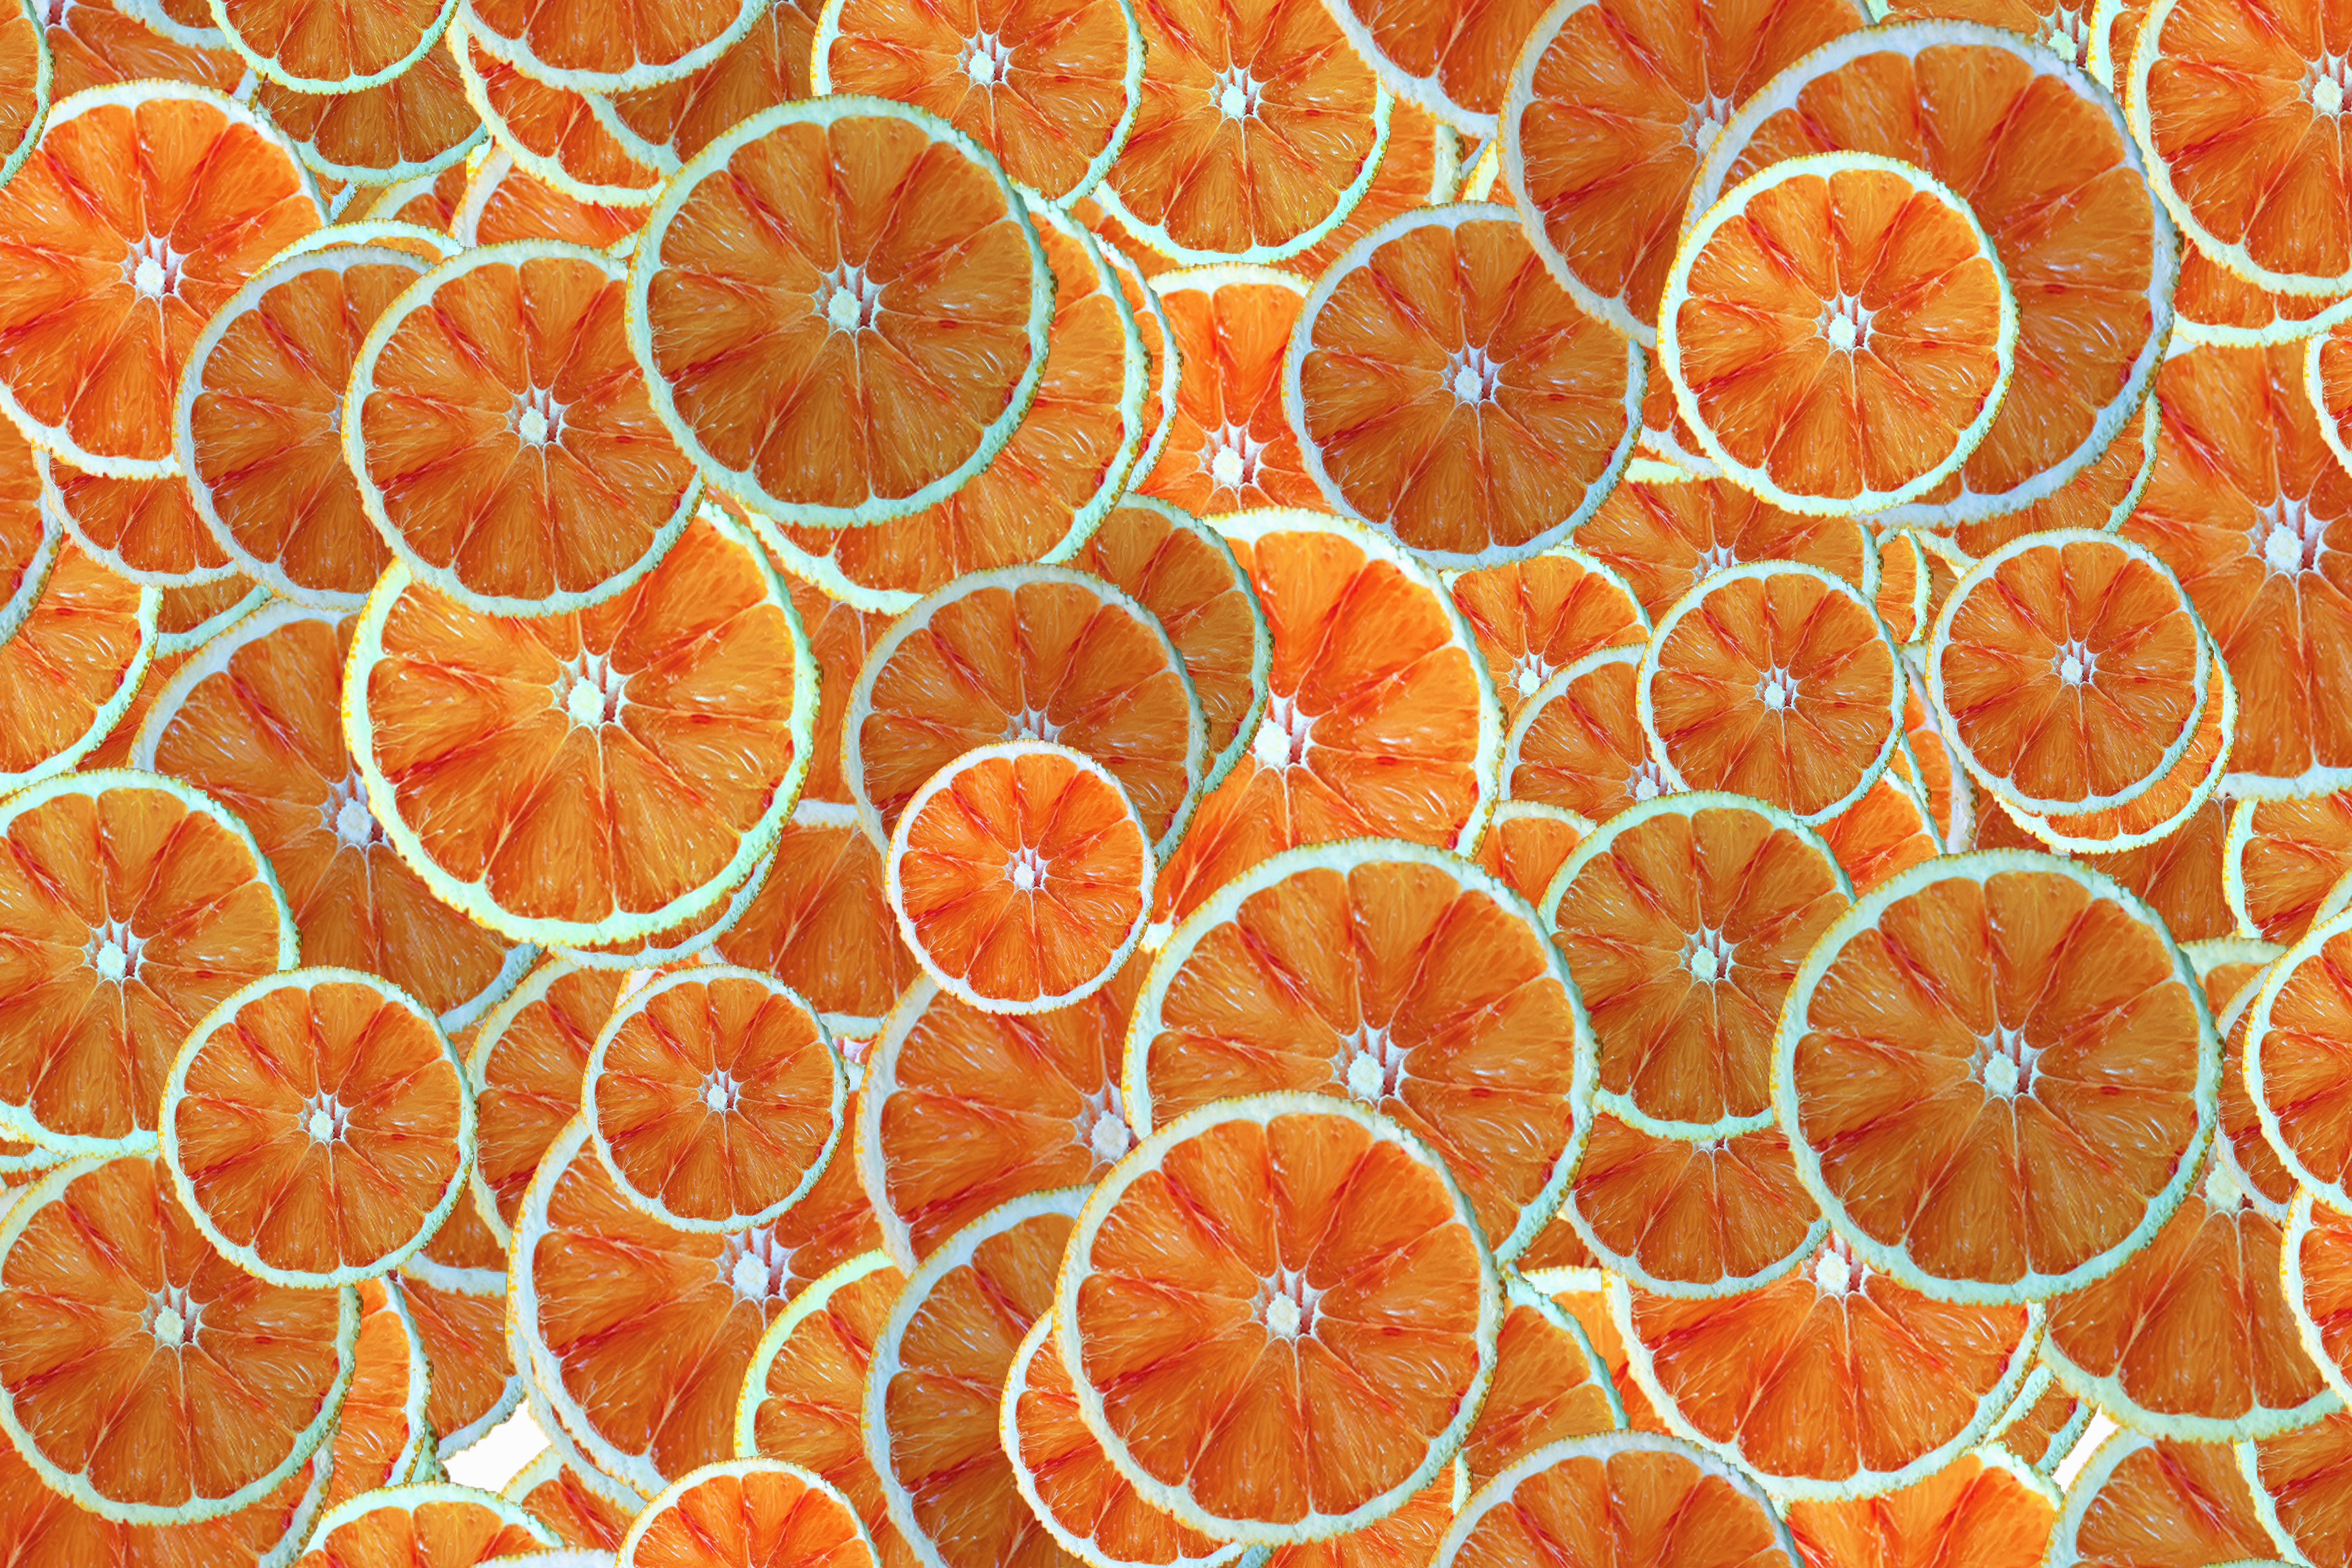 65331 download wallpaper Fruits, Oranges, Texture, Textures, Citrus screensavers and pictures for free